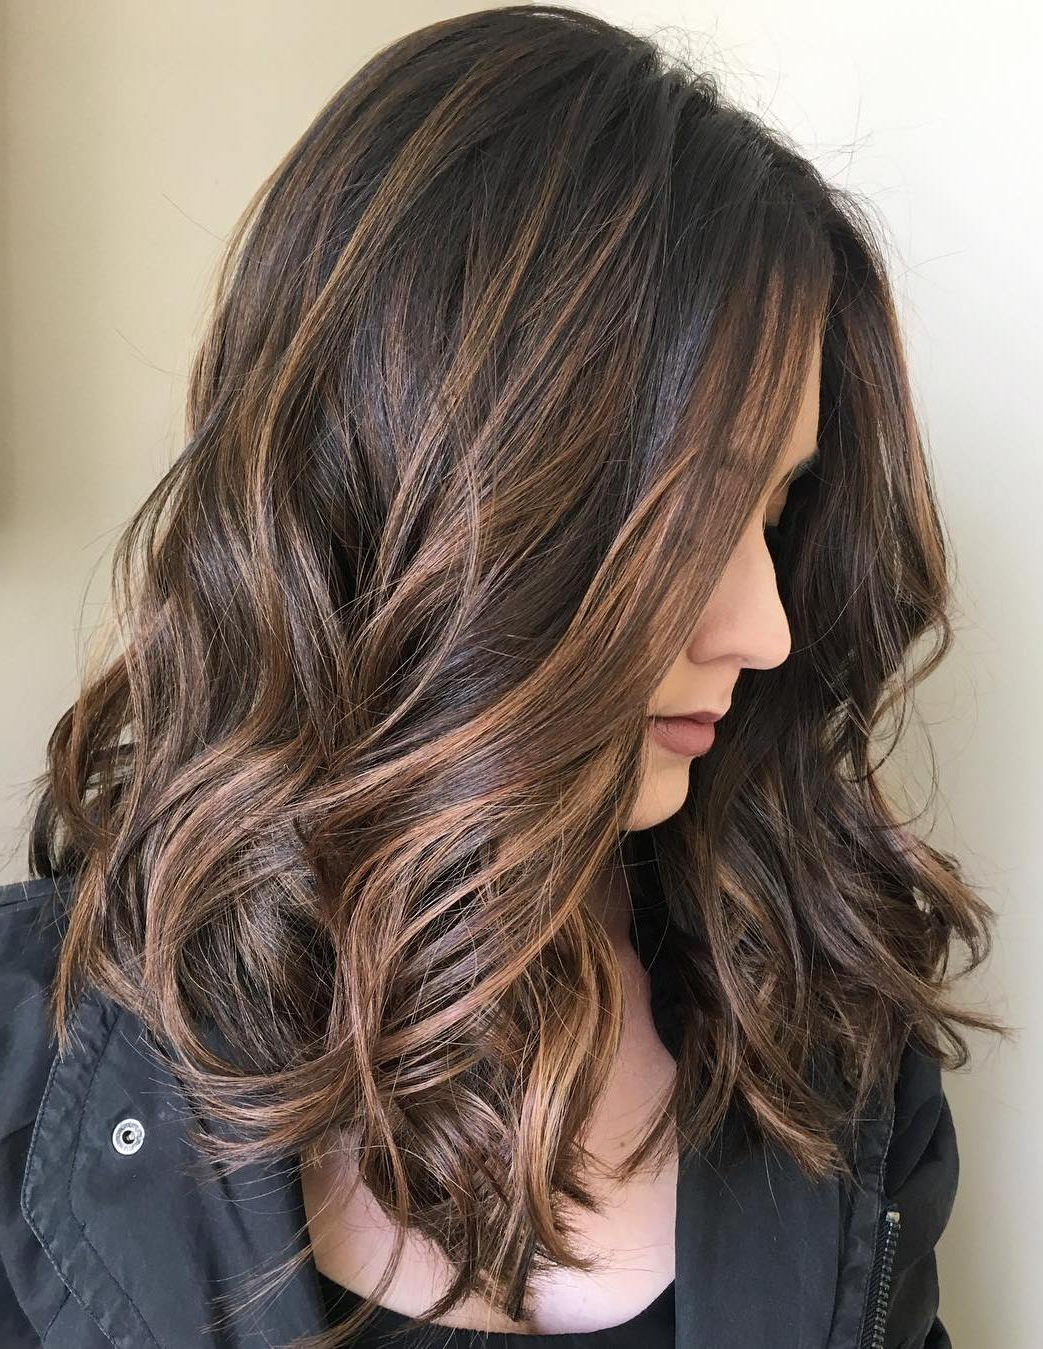 70 Balayage Hair Color Ideas With Blonde, Brown And Caramel Highlights With Regard To Long Feathered Espresso Brown Pixie Hairstyles (View 12 of 20)